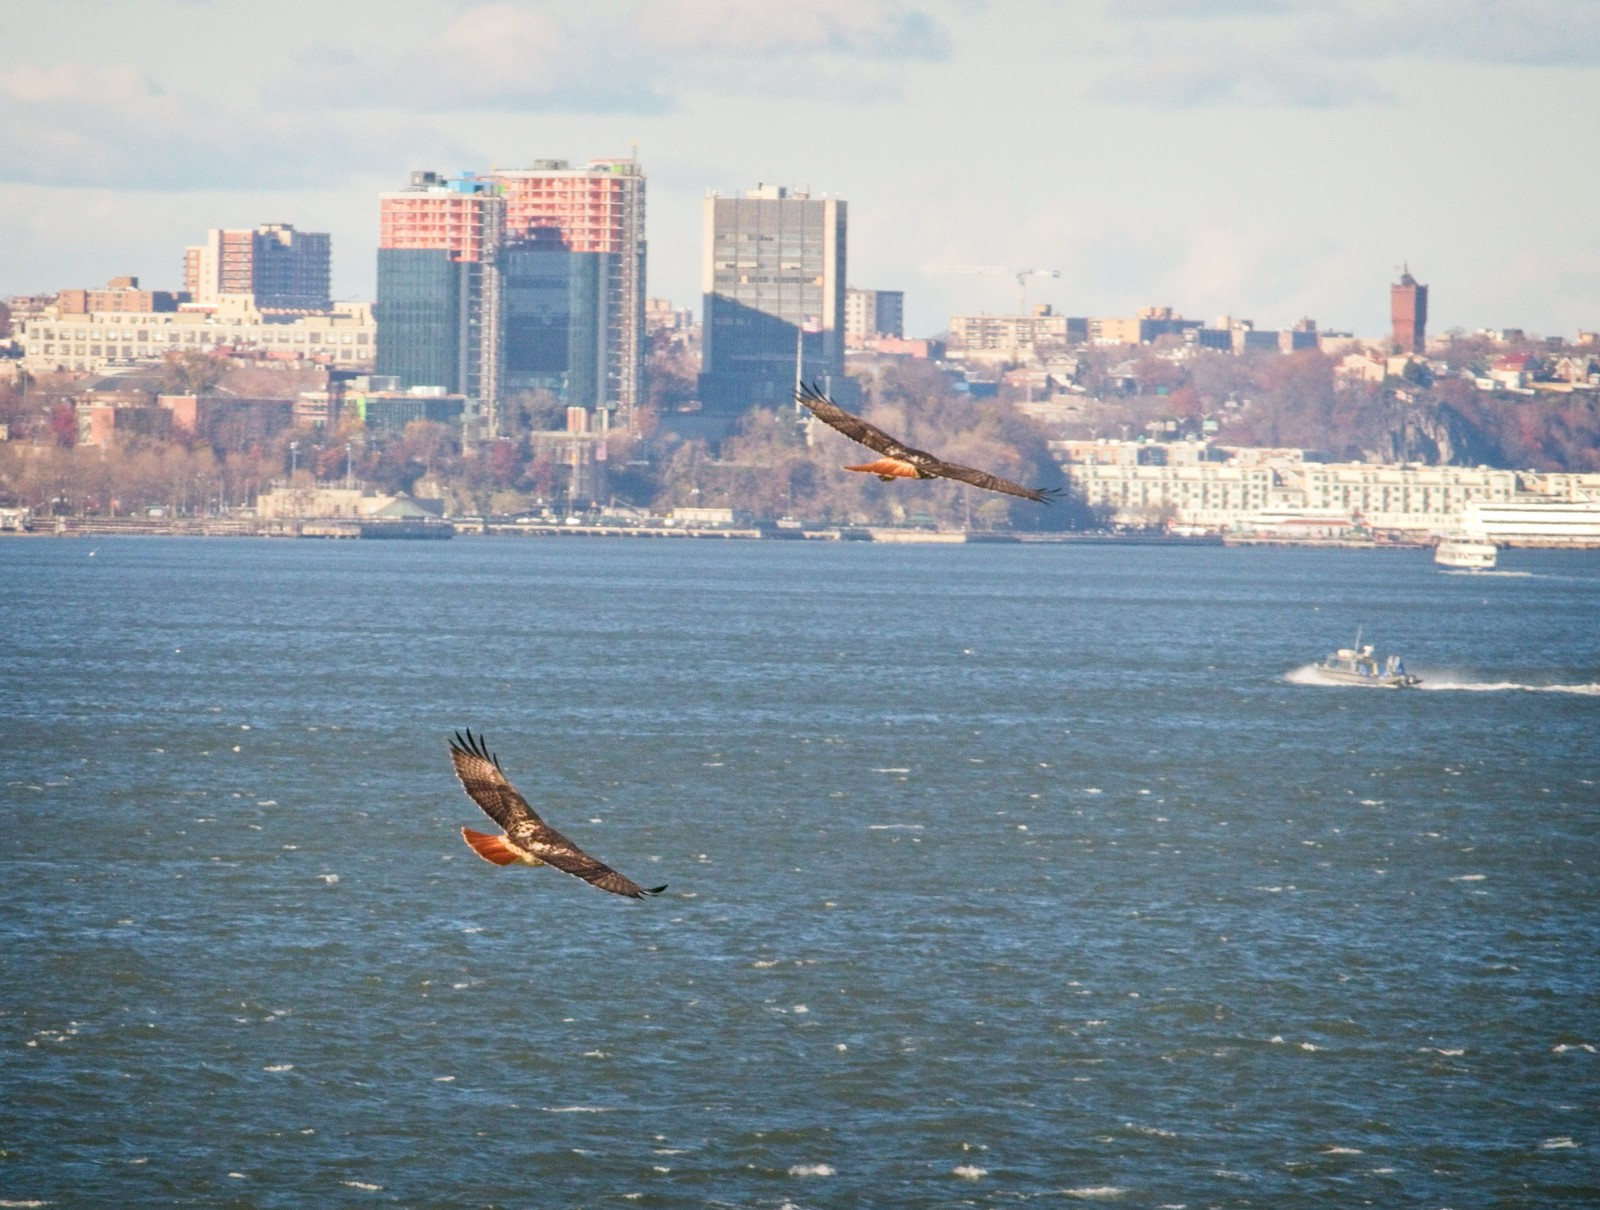 Red-tailed hawk pair over New York Harbor